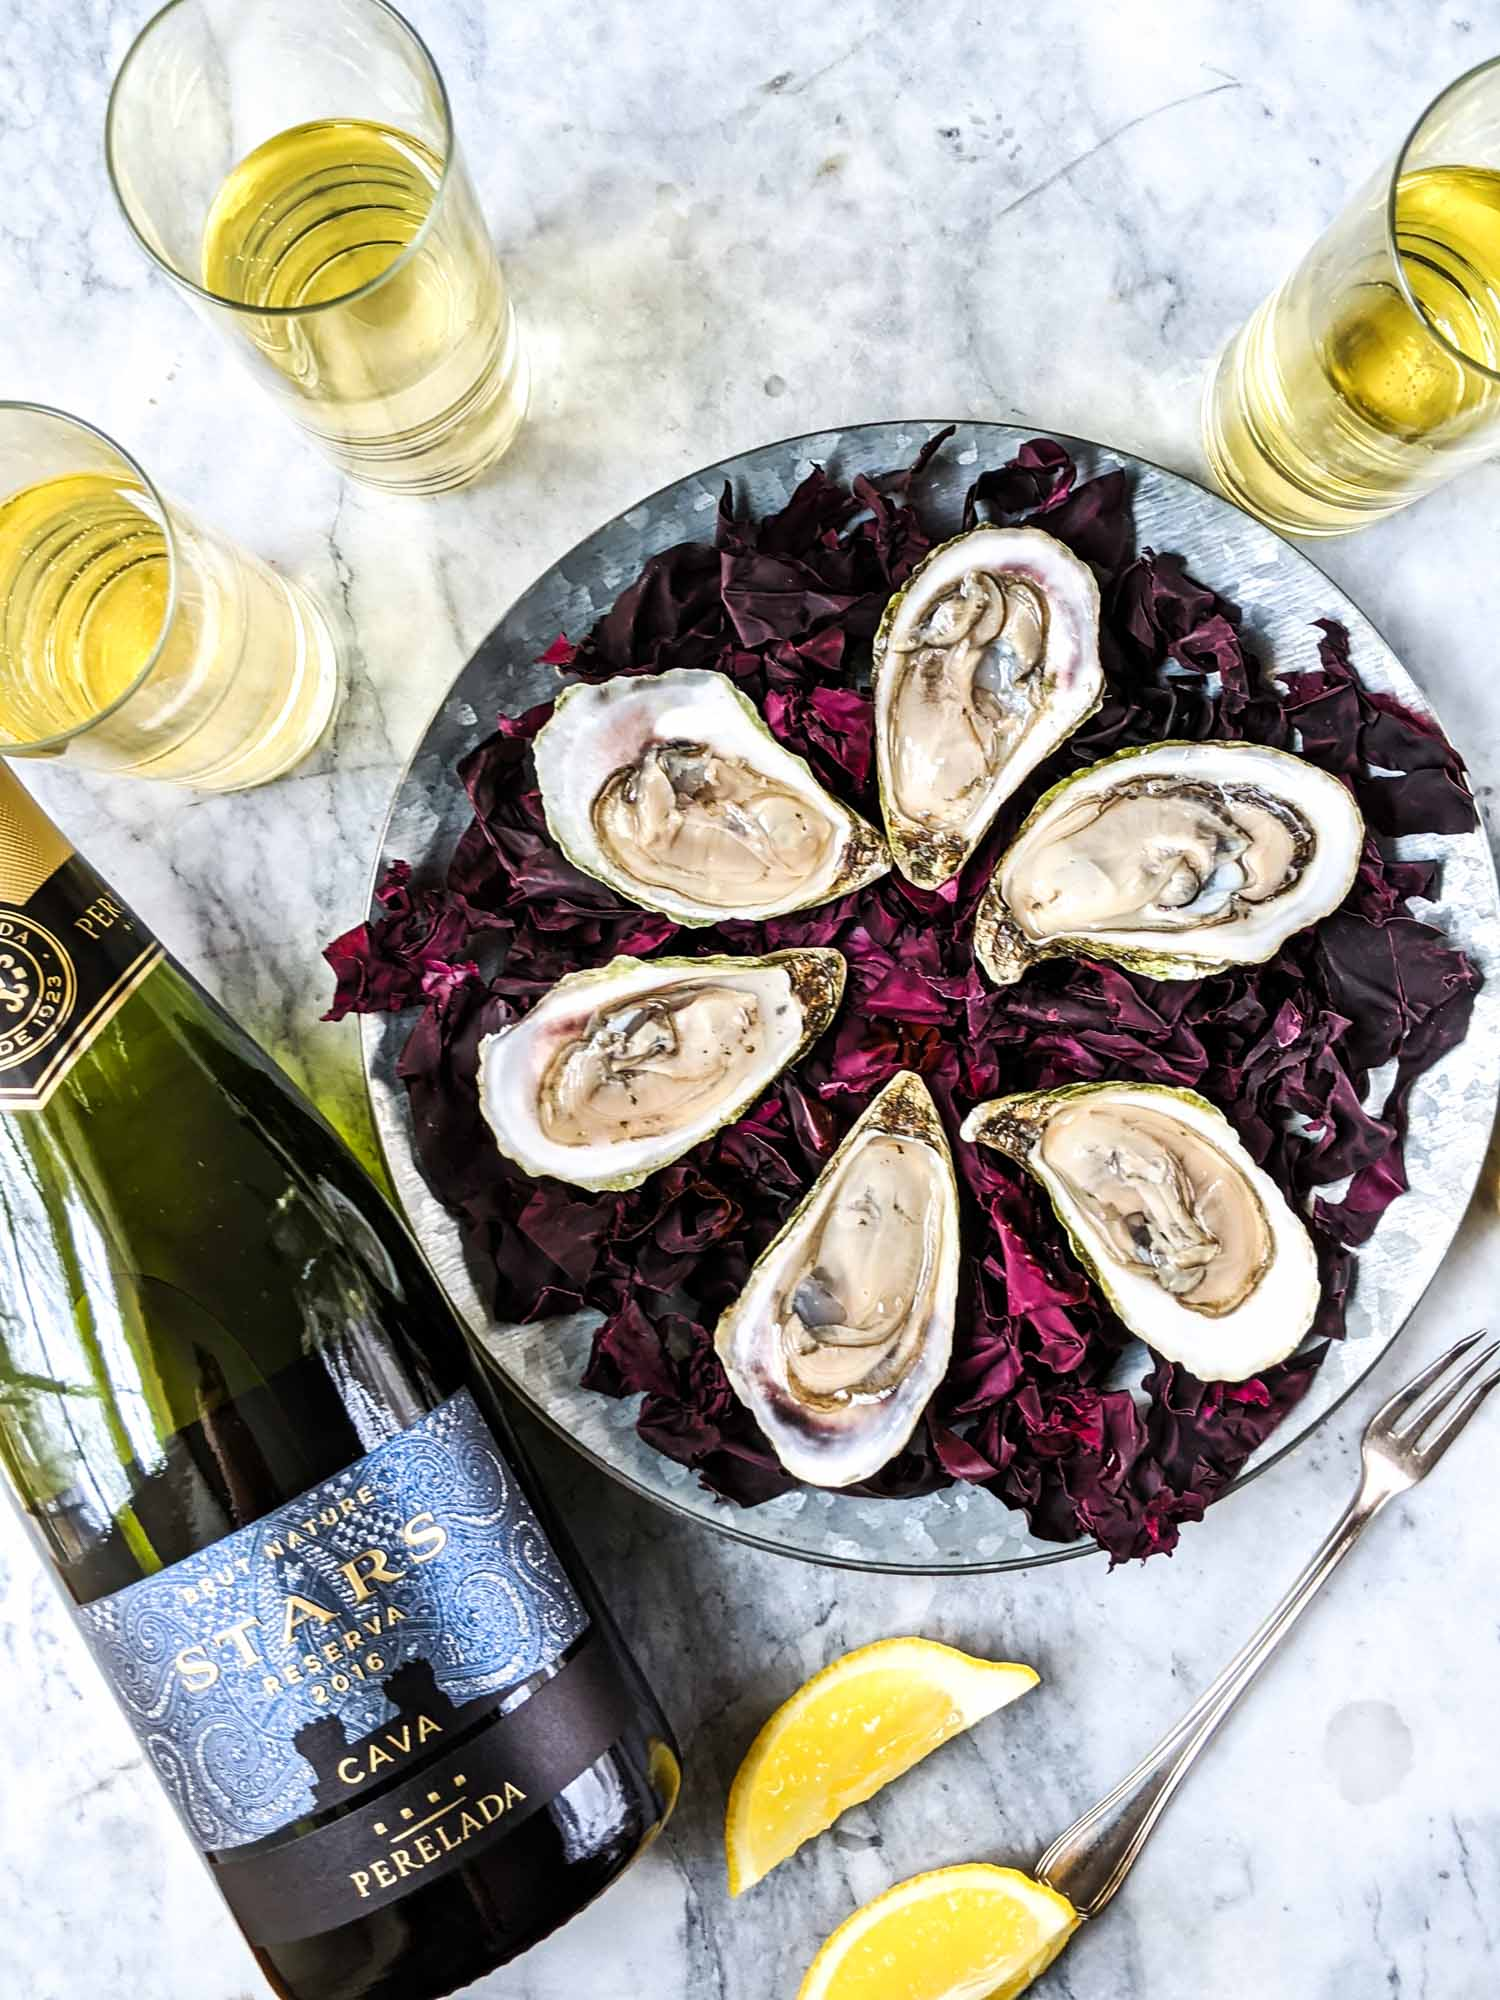 Spanish cava paired with oysters